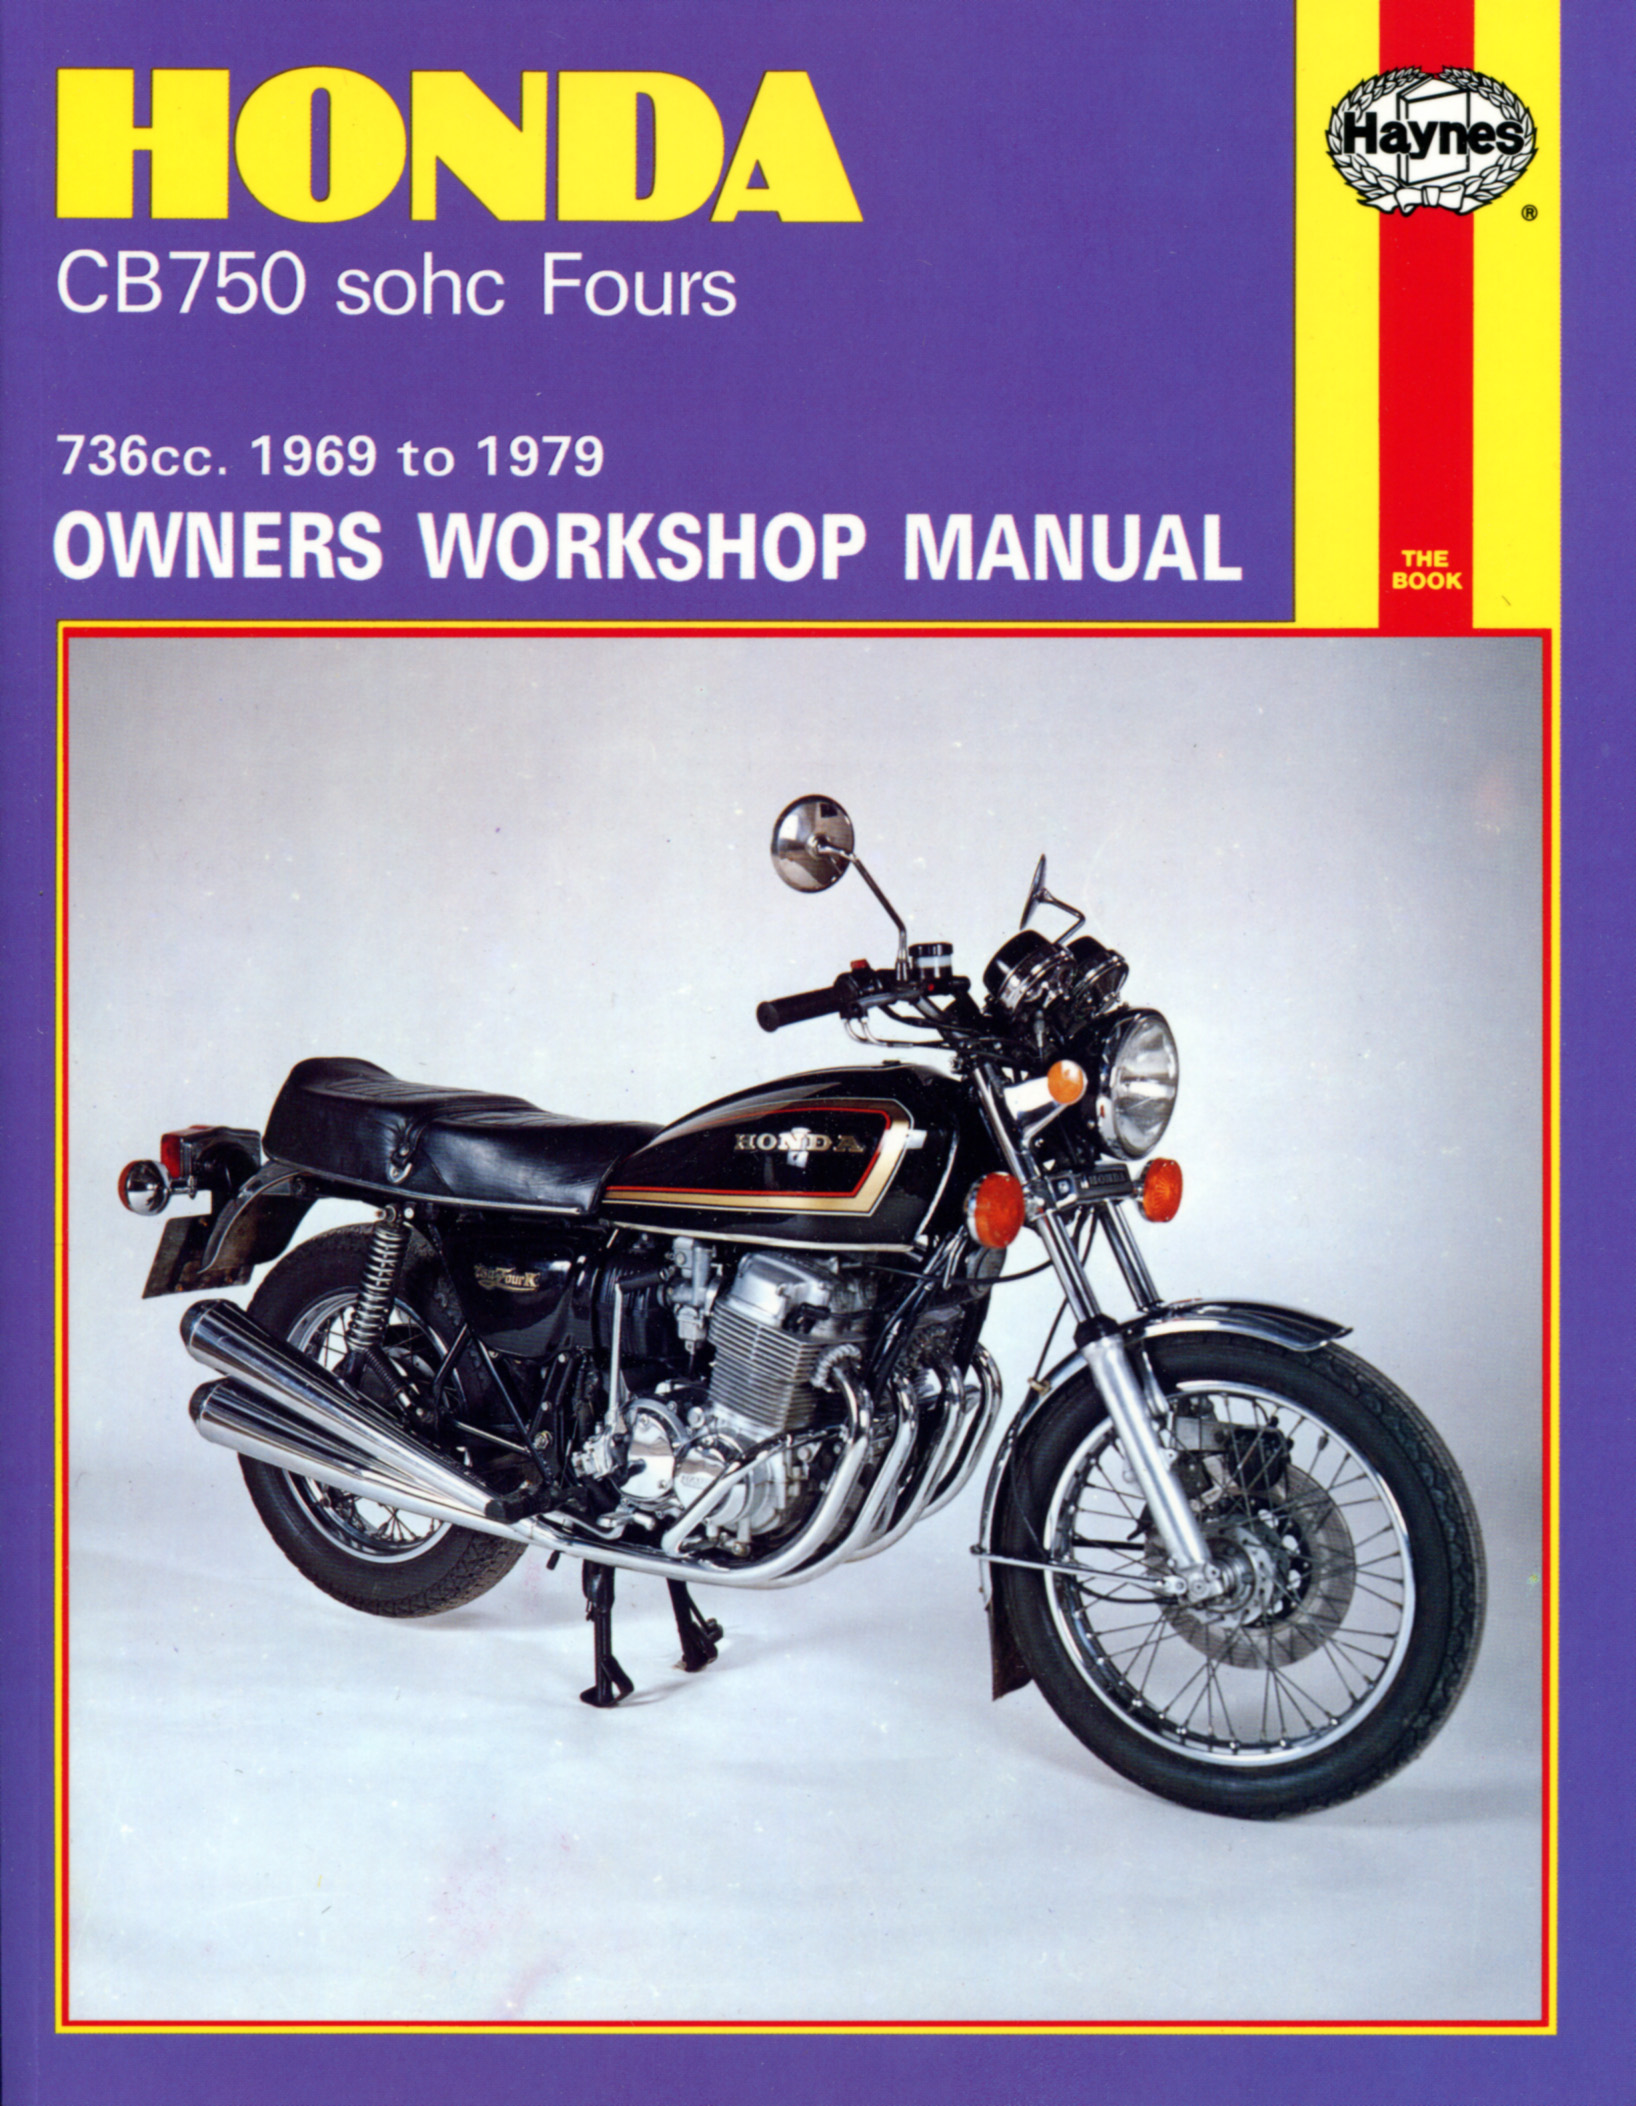 Honda CB750 SOHC Fours 1969 - 1979 Owners Workshop Manual 131